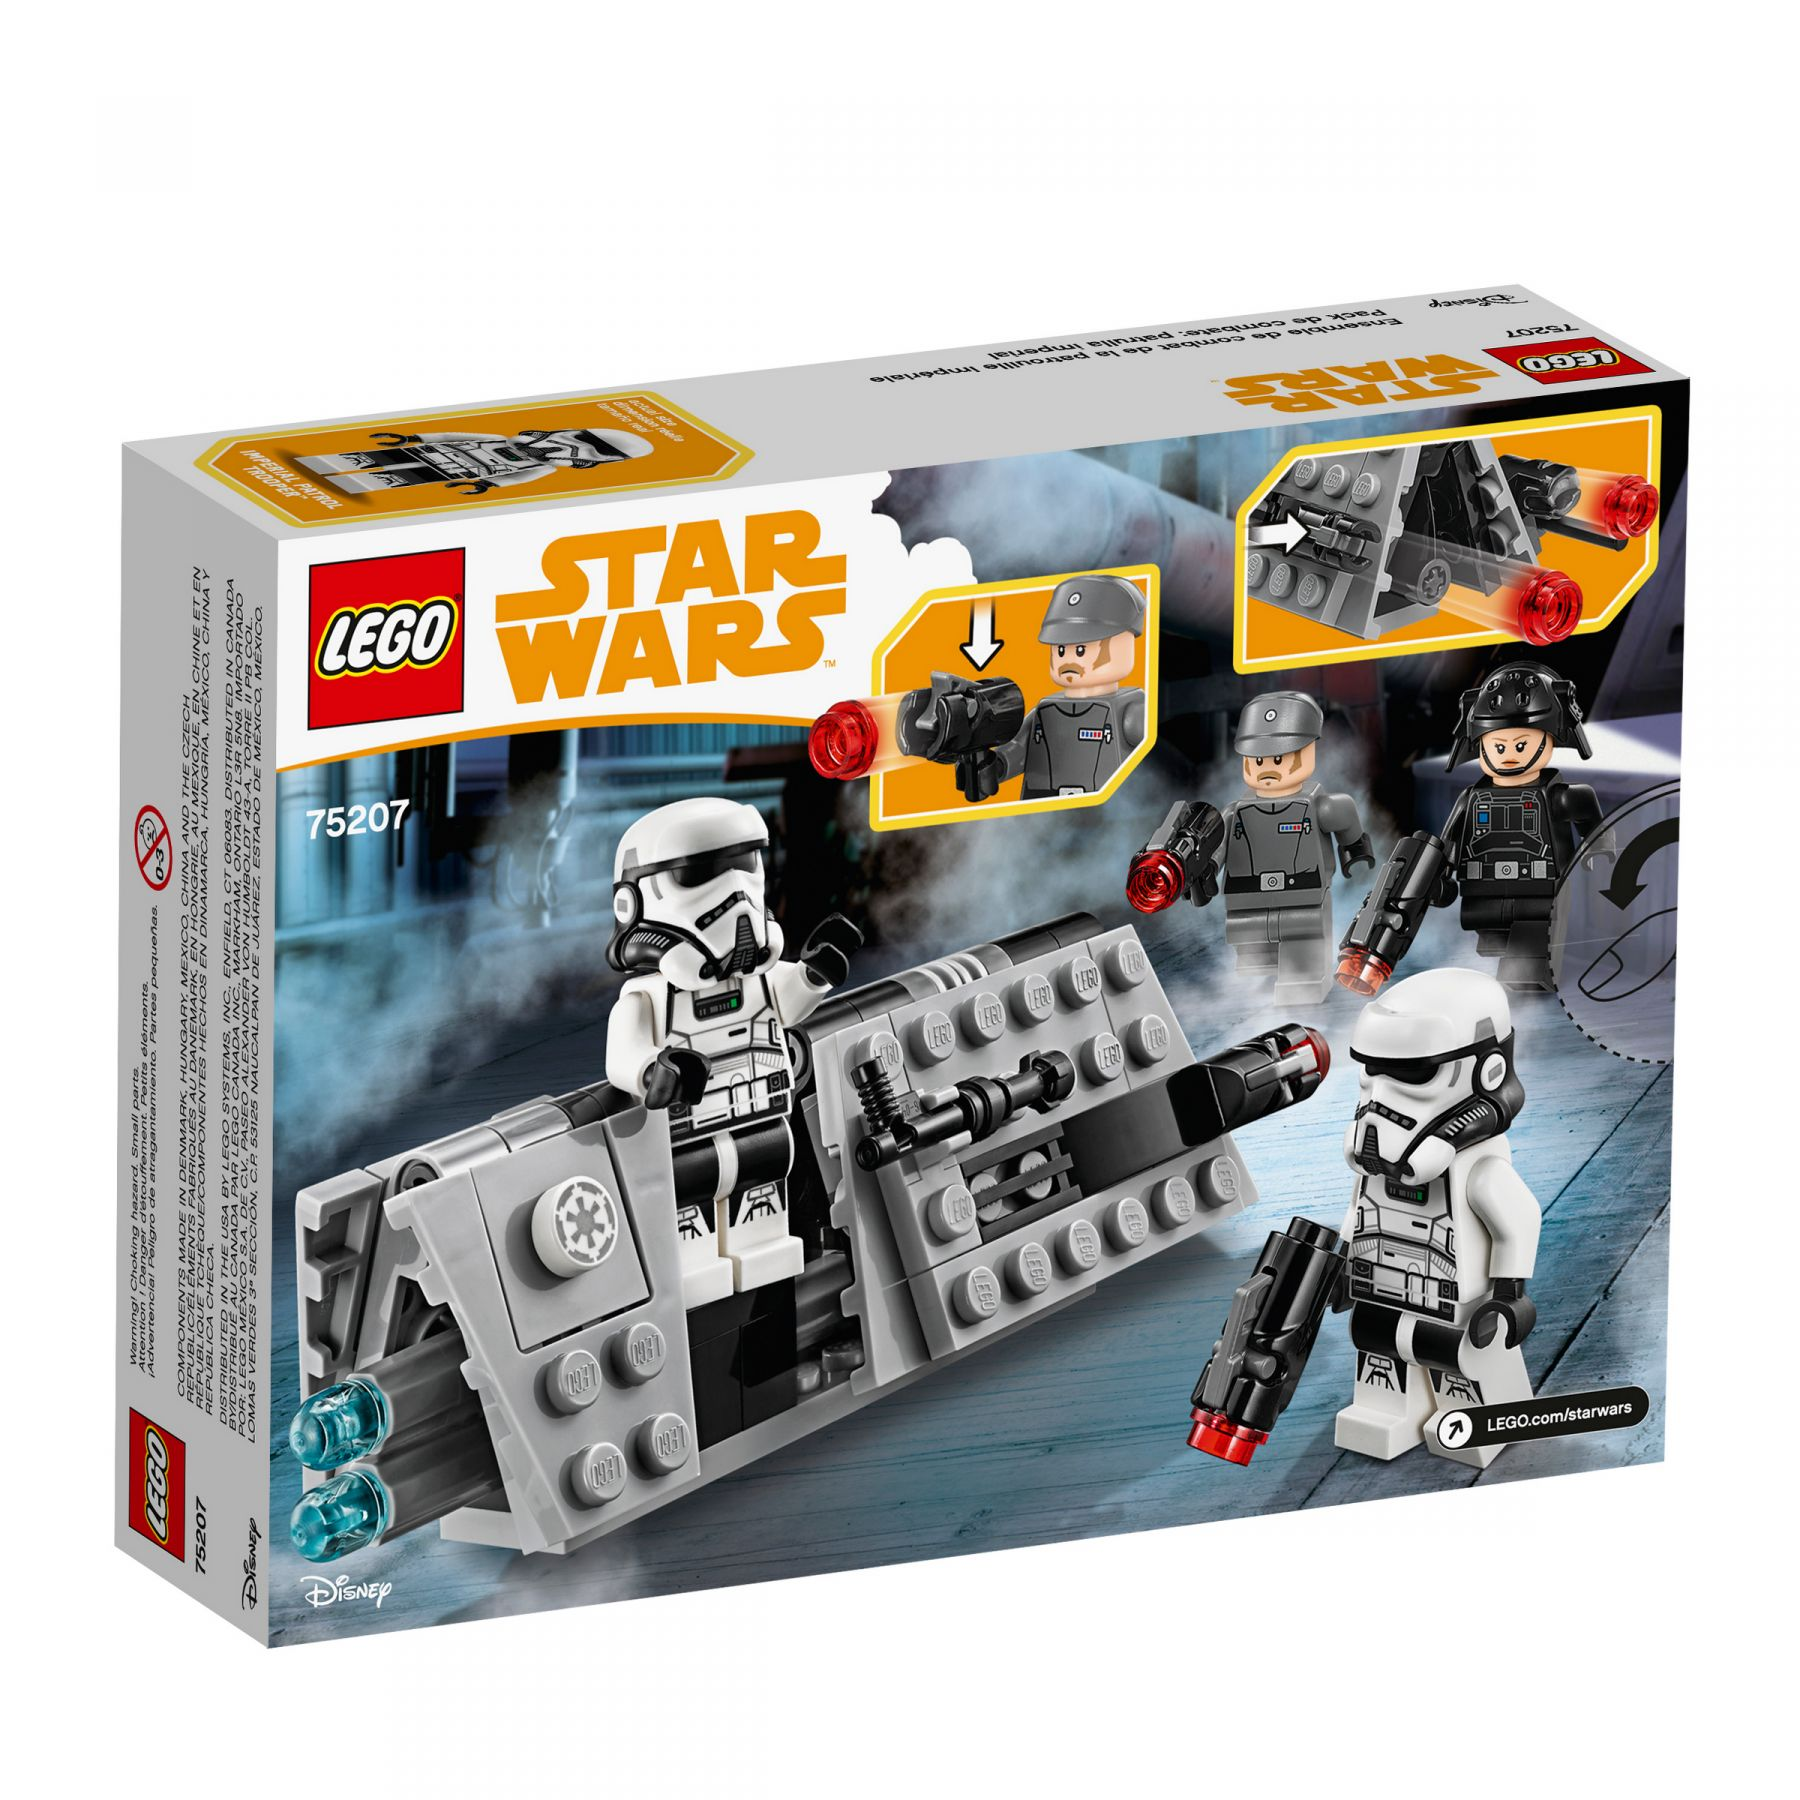 LEGO Star Wars 75207 Imperial Patrol Battle Pack LEGO_75207_alt4.jpg